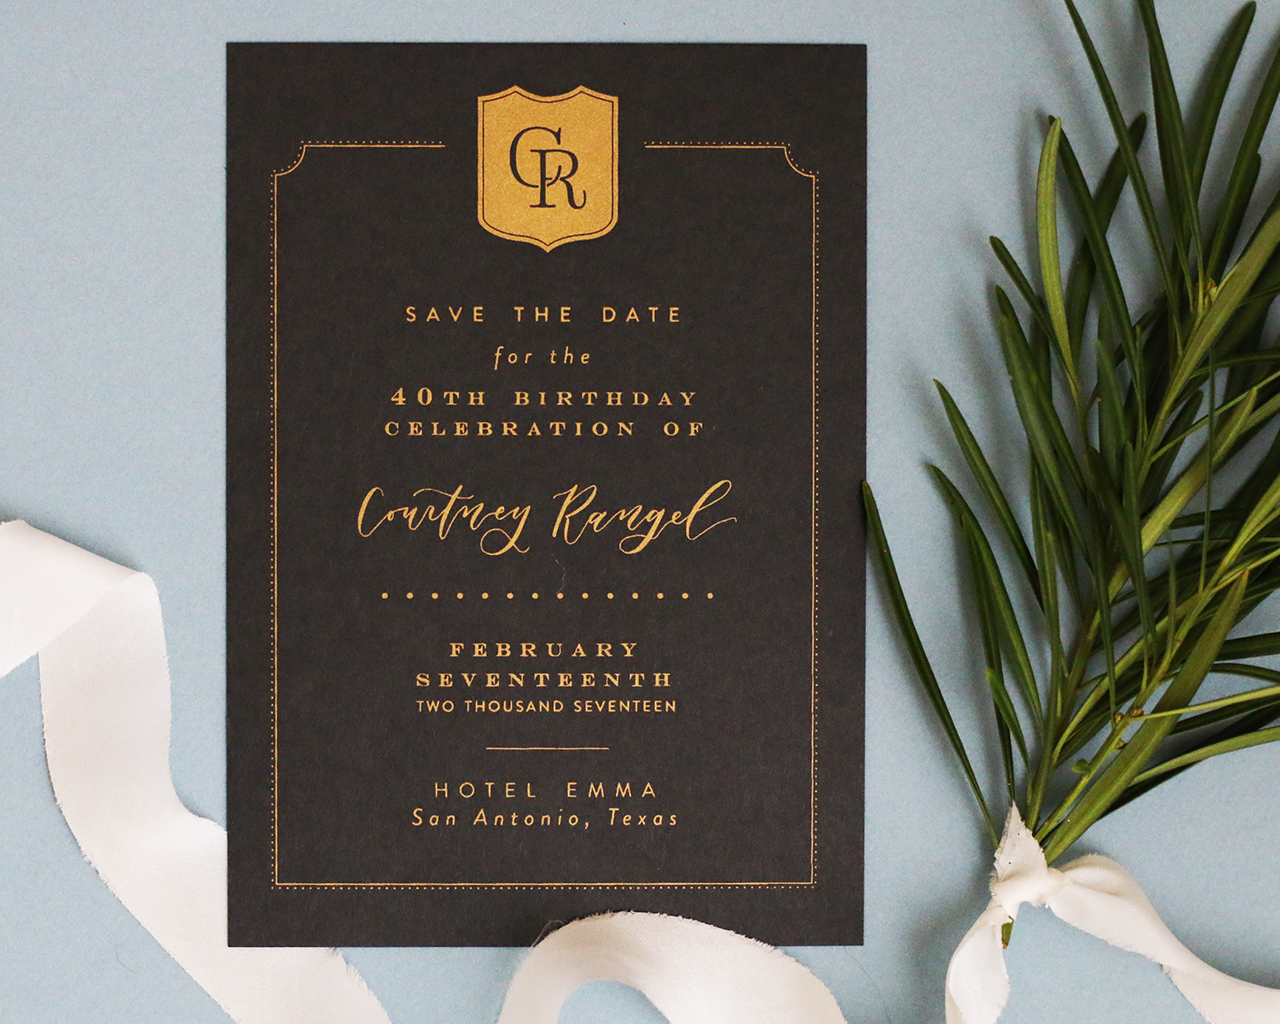 printed birthday party invitations ; Traditional-Black-and-Gold-Screen-Printed-Birthday-Party-Invitations-Goldie-Design-Co-OSBP-4